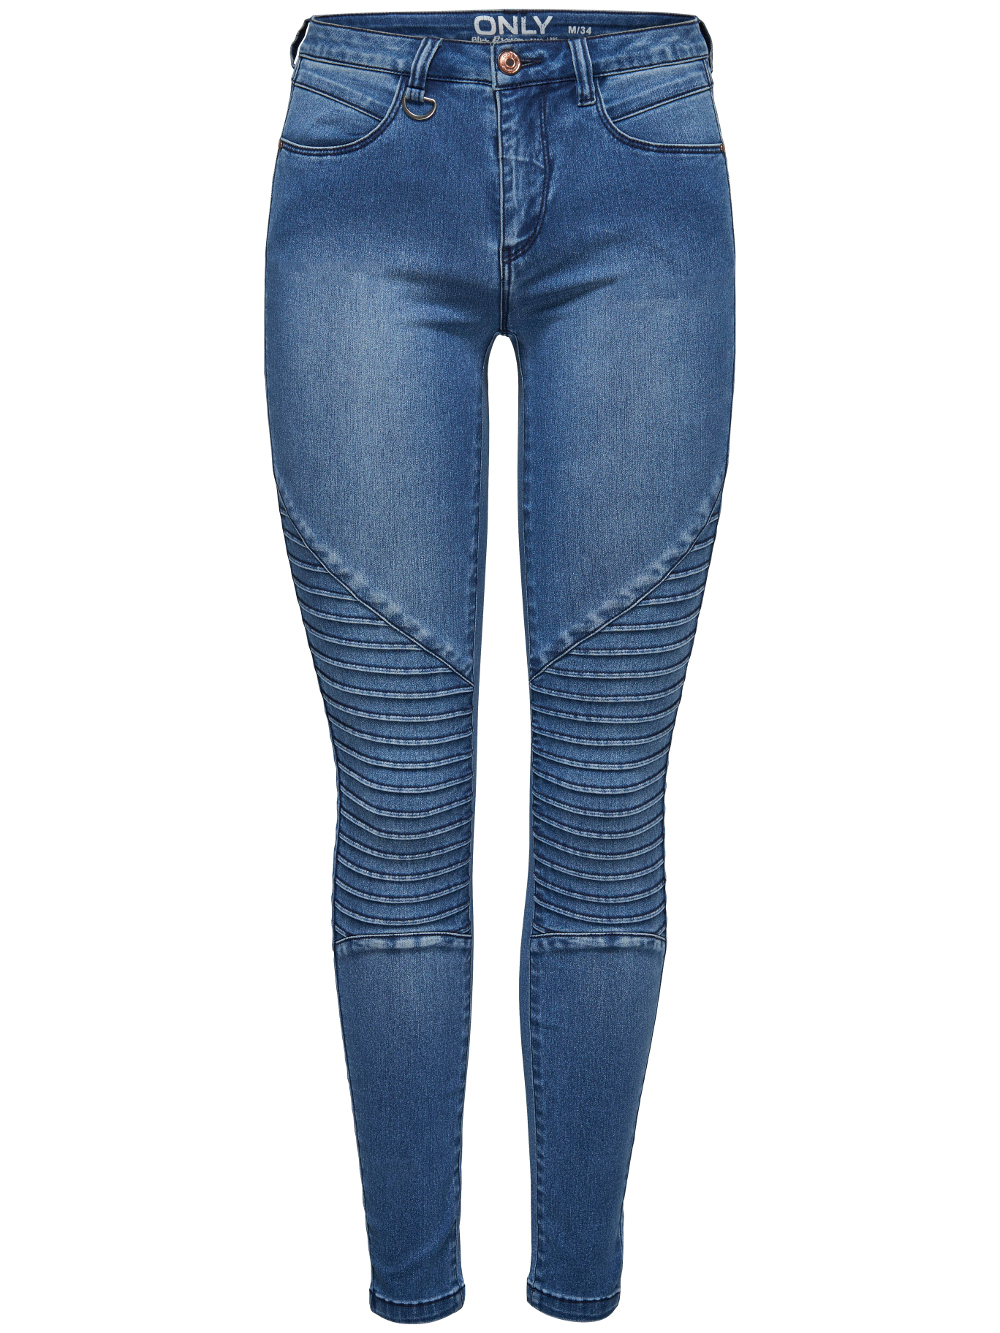 ae617fb980dd ONLY Damen Jeans Leggings onlROYAL REG SKINNY BIKER BJ11503 Jeggings  mittelblau – Bild 2